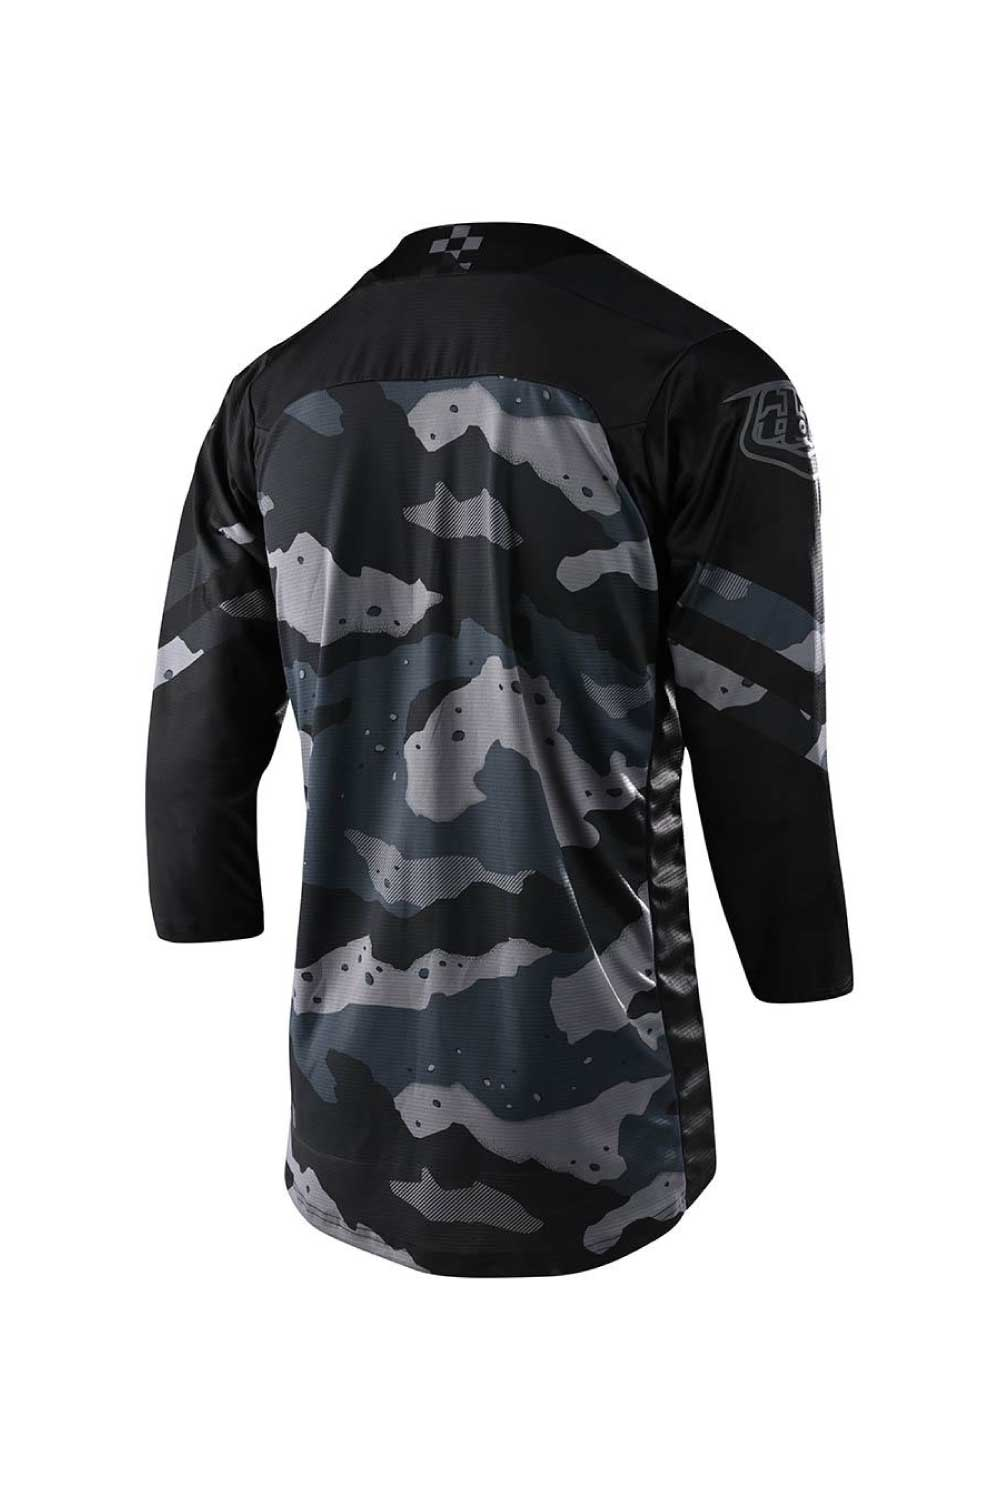 Troy Lee Designs 2020 Ruckus 3/4 MTB Jersey